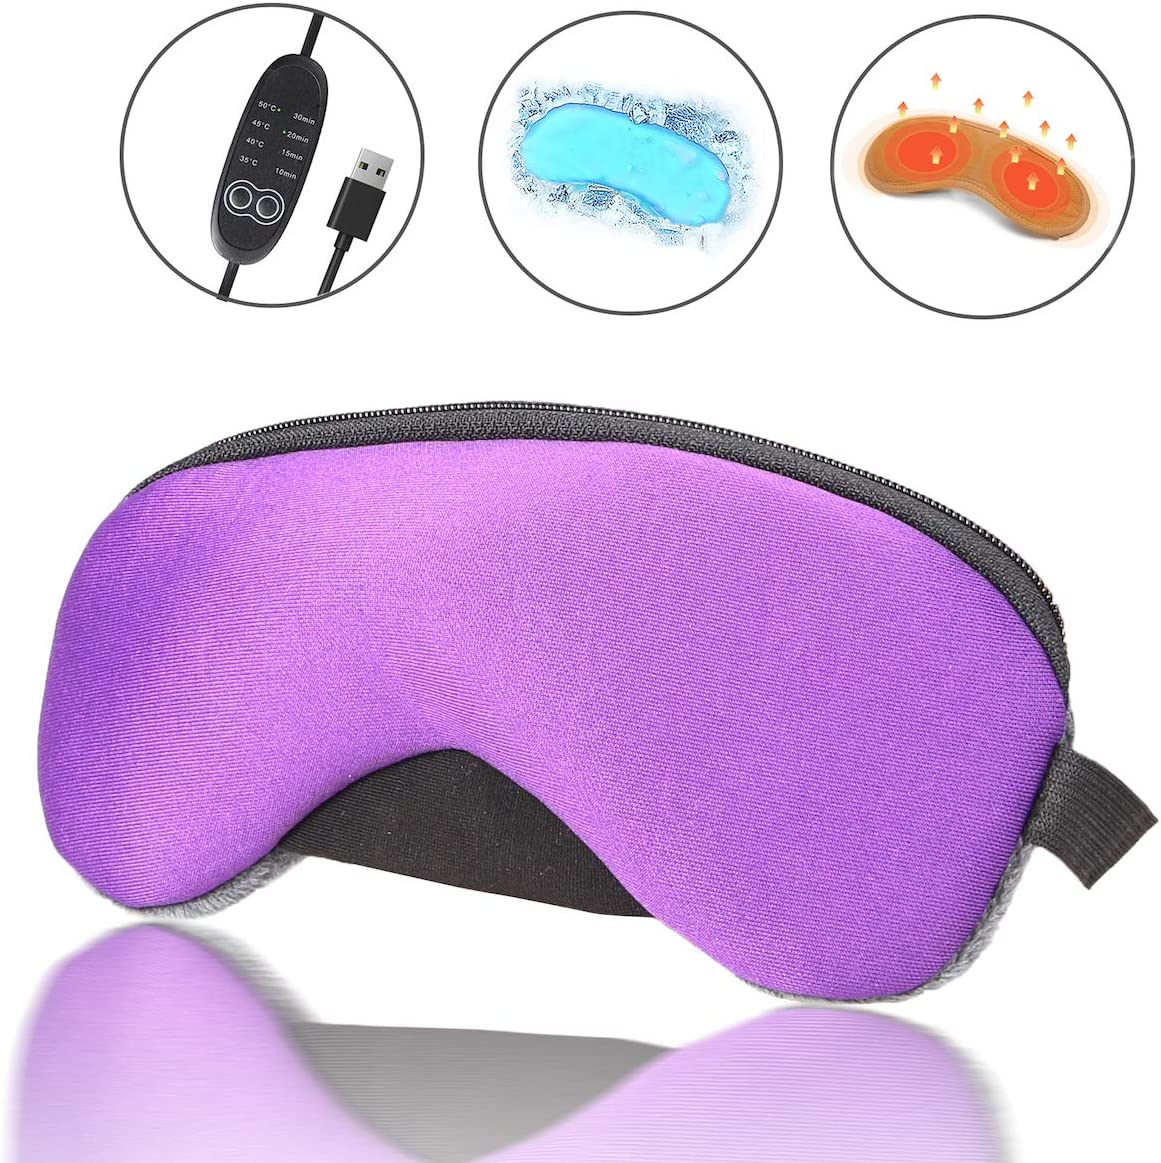 Portable Cold and Hot USB Heated Steam Eye Mask + Reusable Ice Gels for Sleeping, Eye Puffiness, Dry Eye, Tired Eyes, and Eye Bag with Time and Temperature Control, Best Father's Day Gift